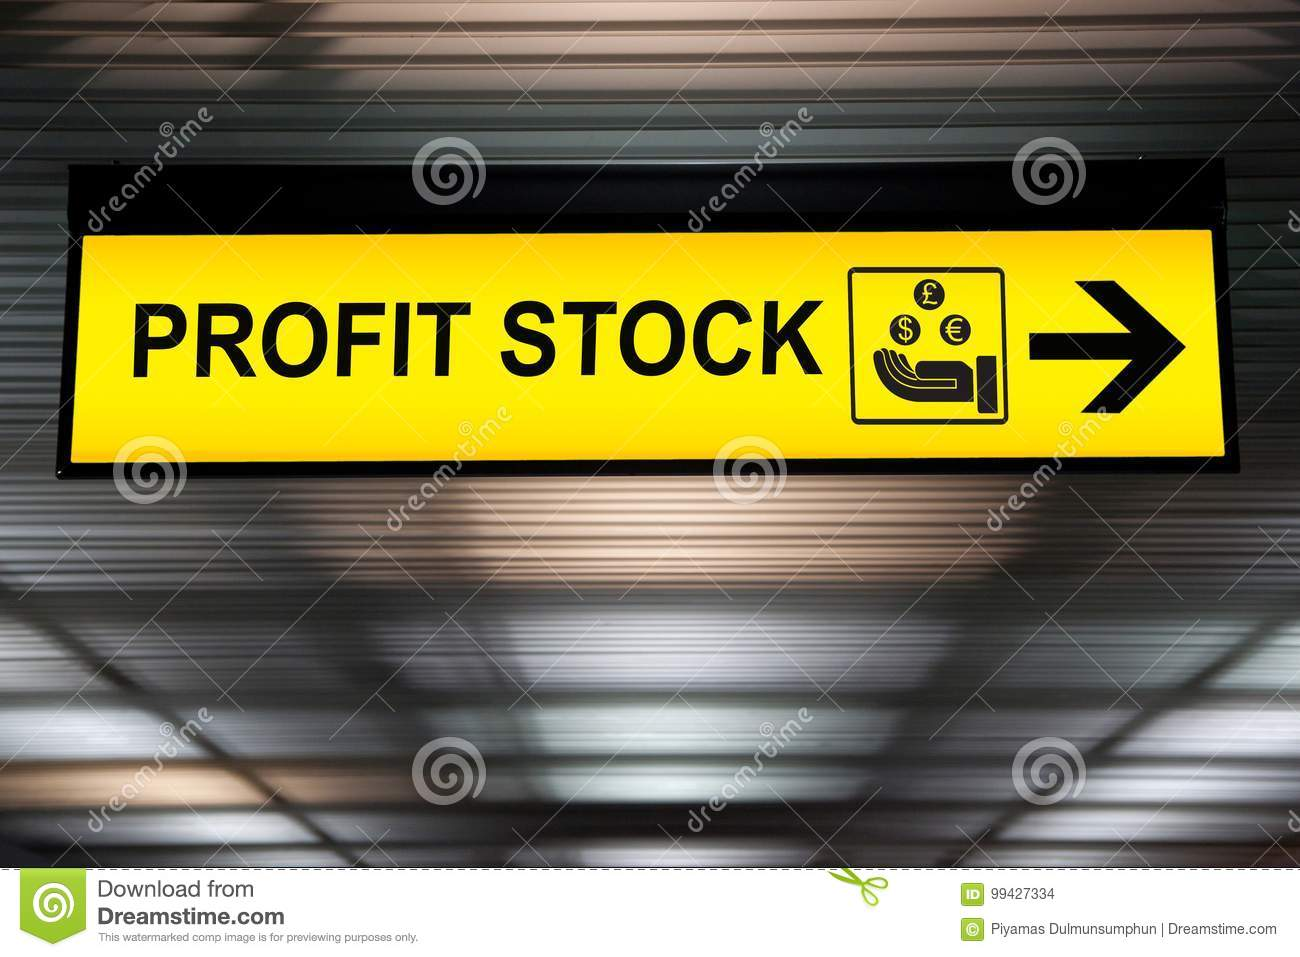 Business financial investment concept :stock money profit yellow